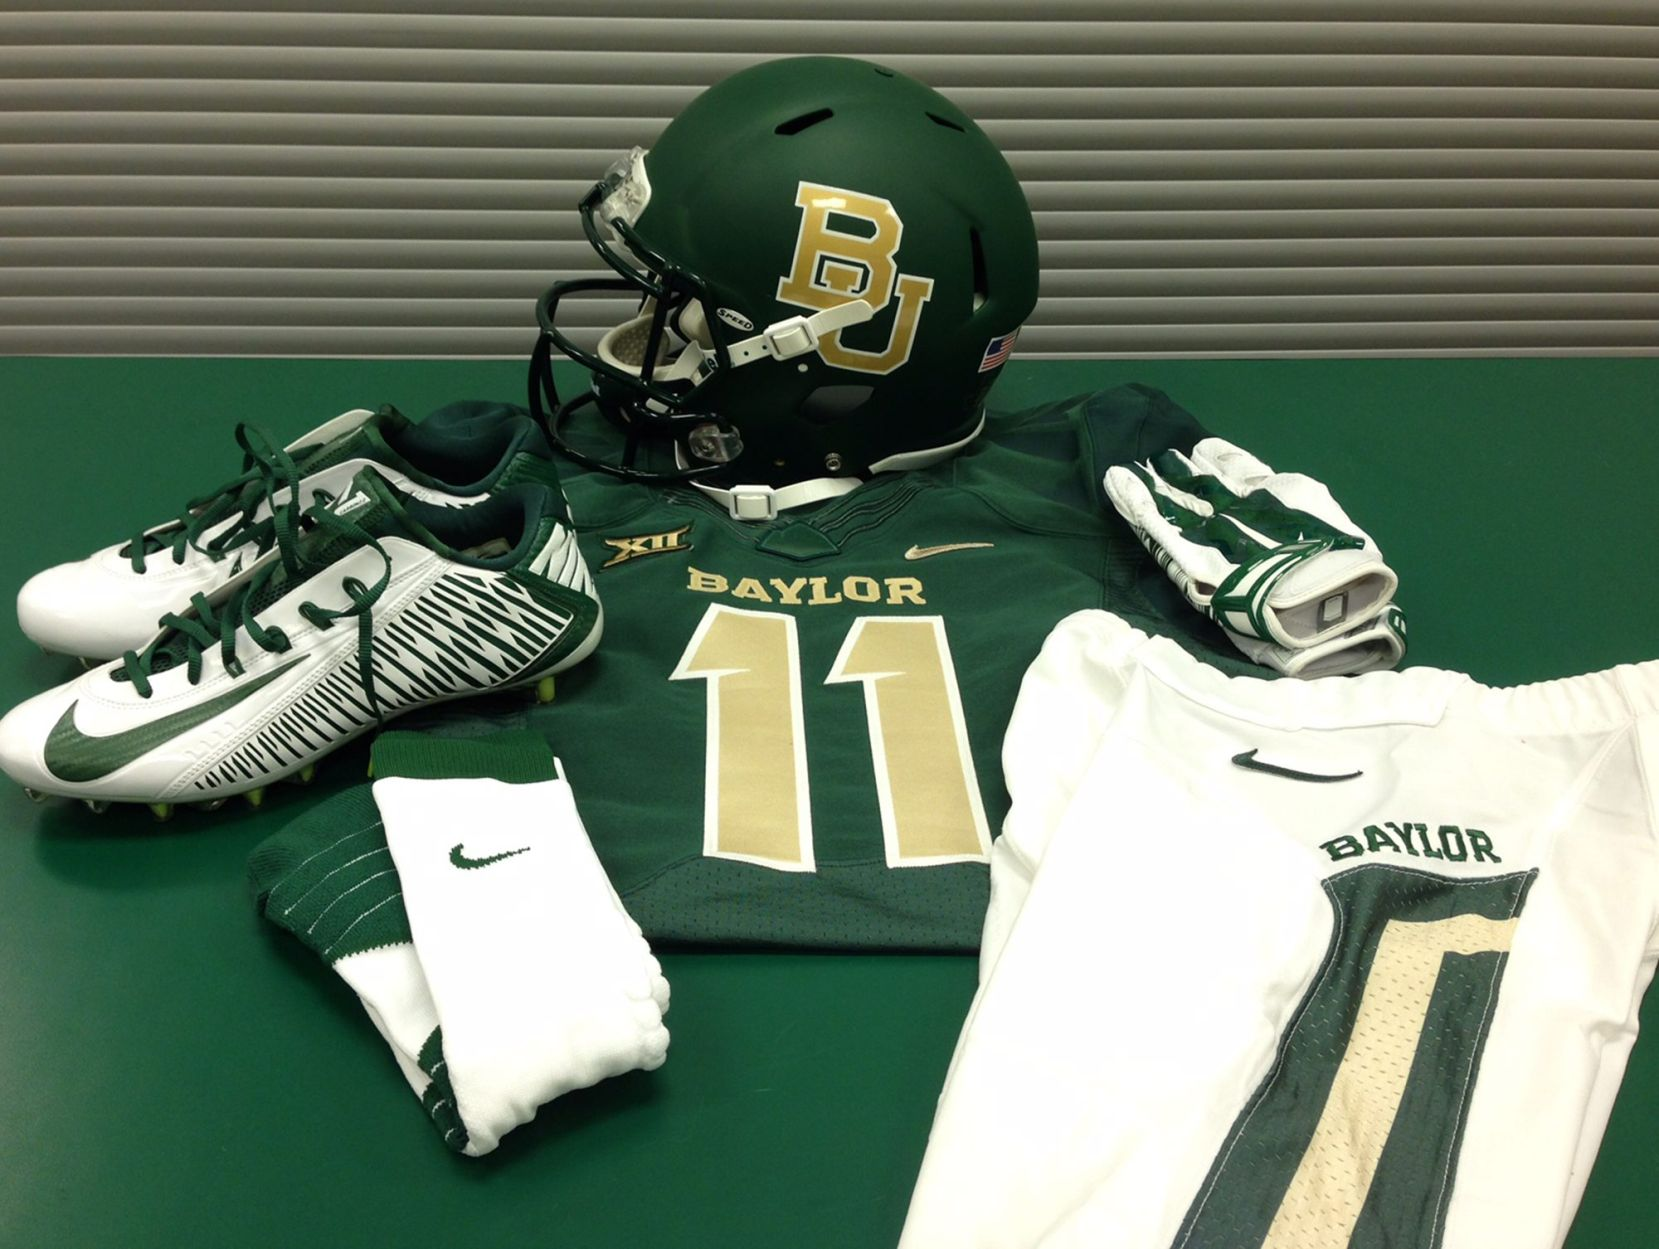 Baylor s endless variety of uniforms has given football program an ... 1b4d903b9